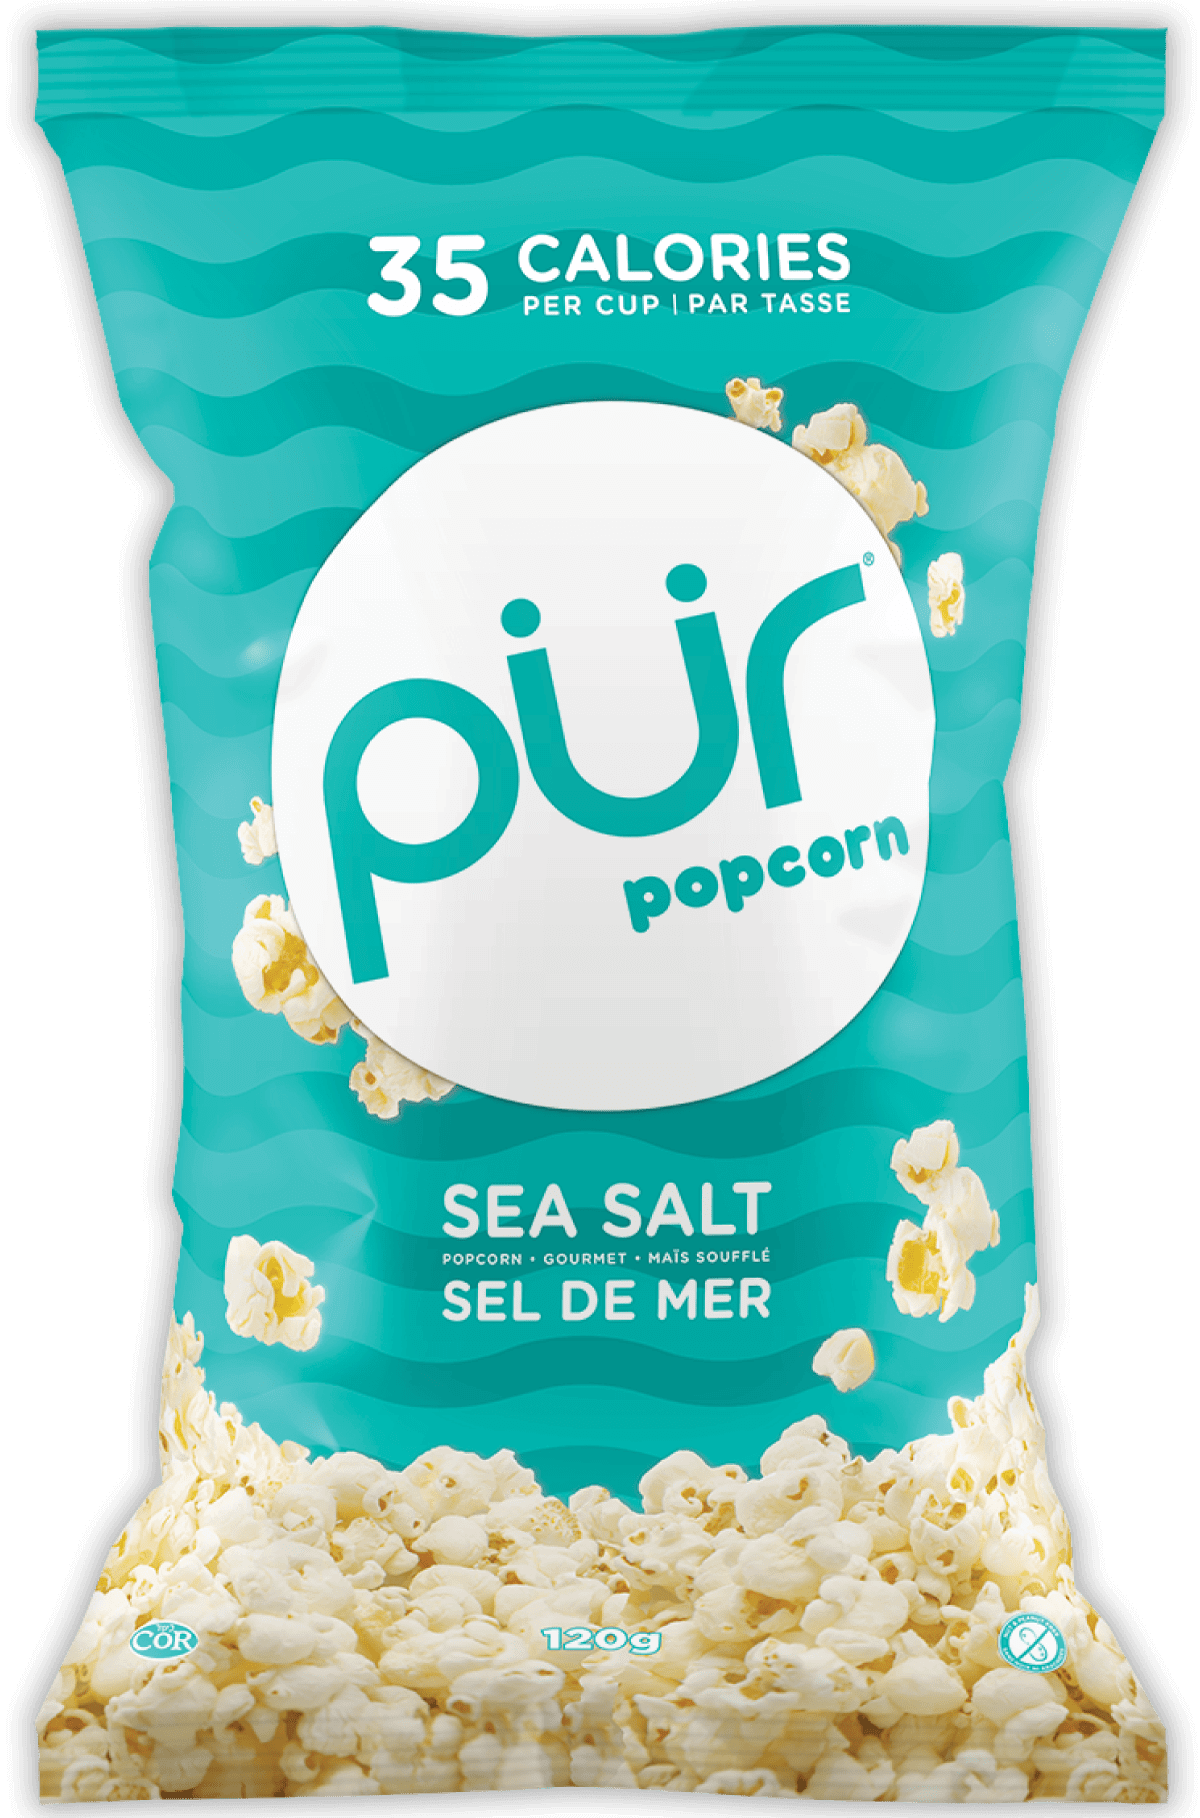 Food & Drink - The Pür Company - Sea Salt Popcorn, 120g